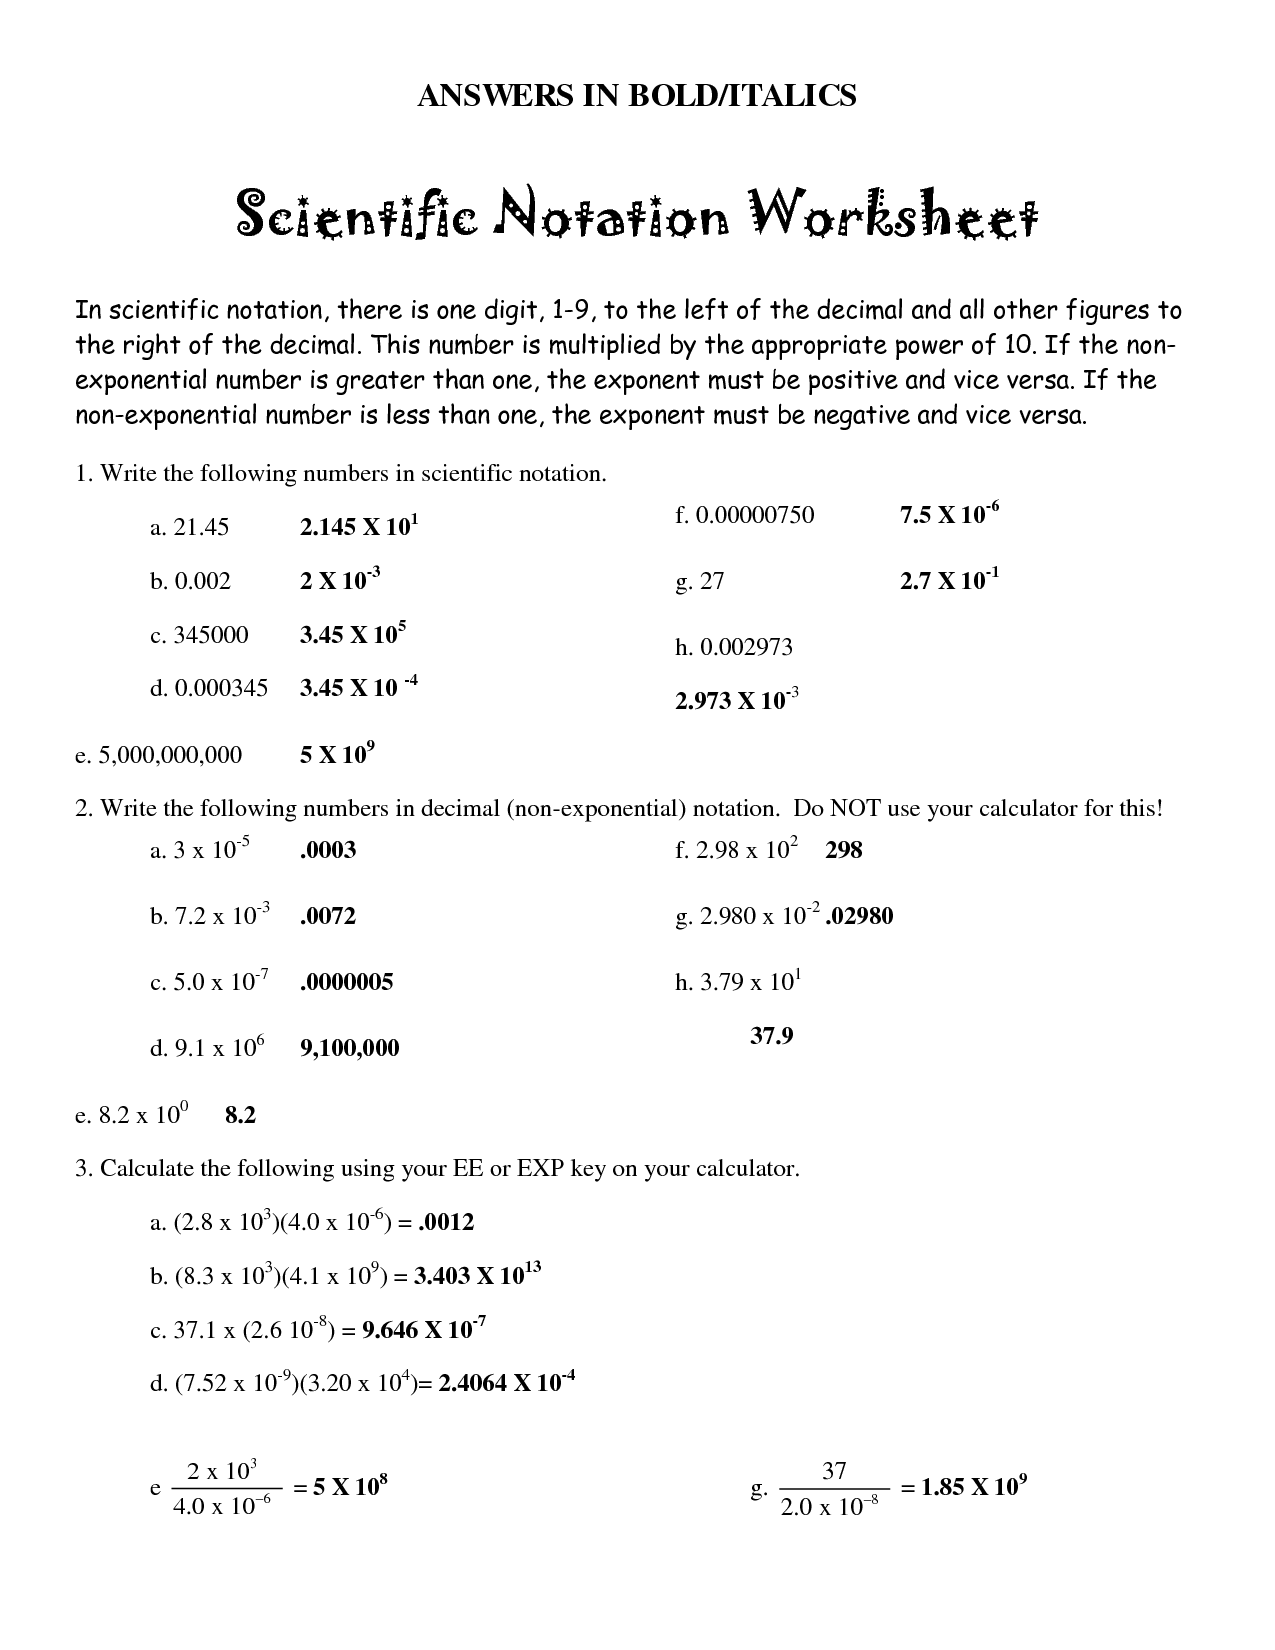 Worksheet On Scientific Notation Calculation